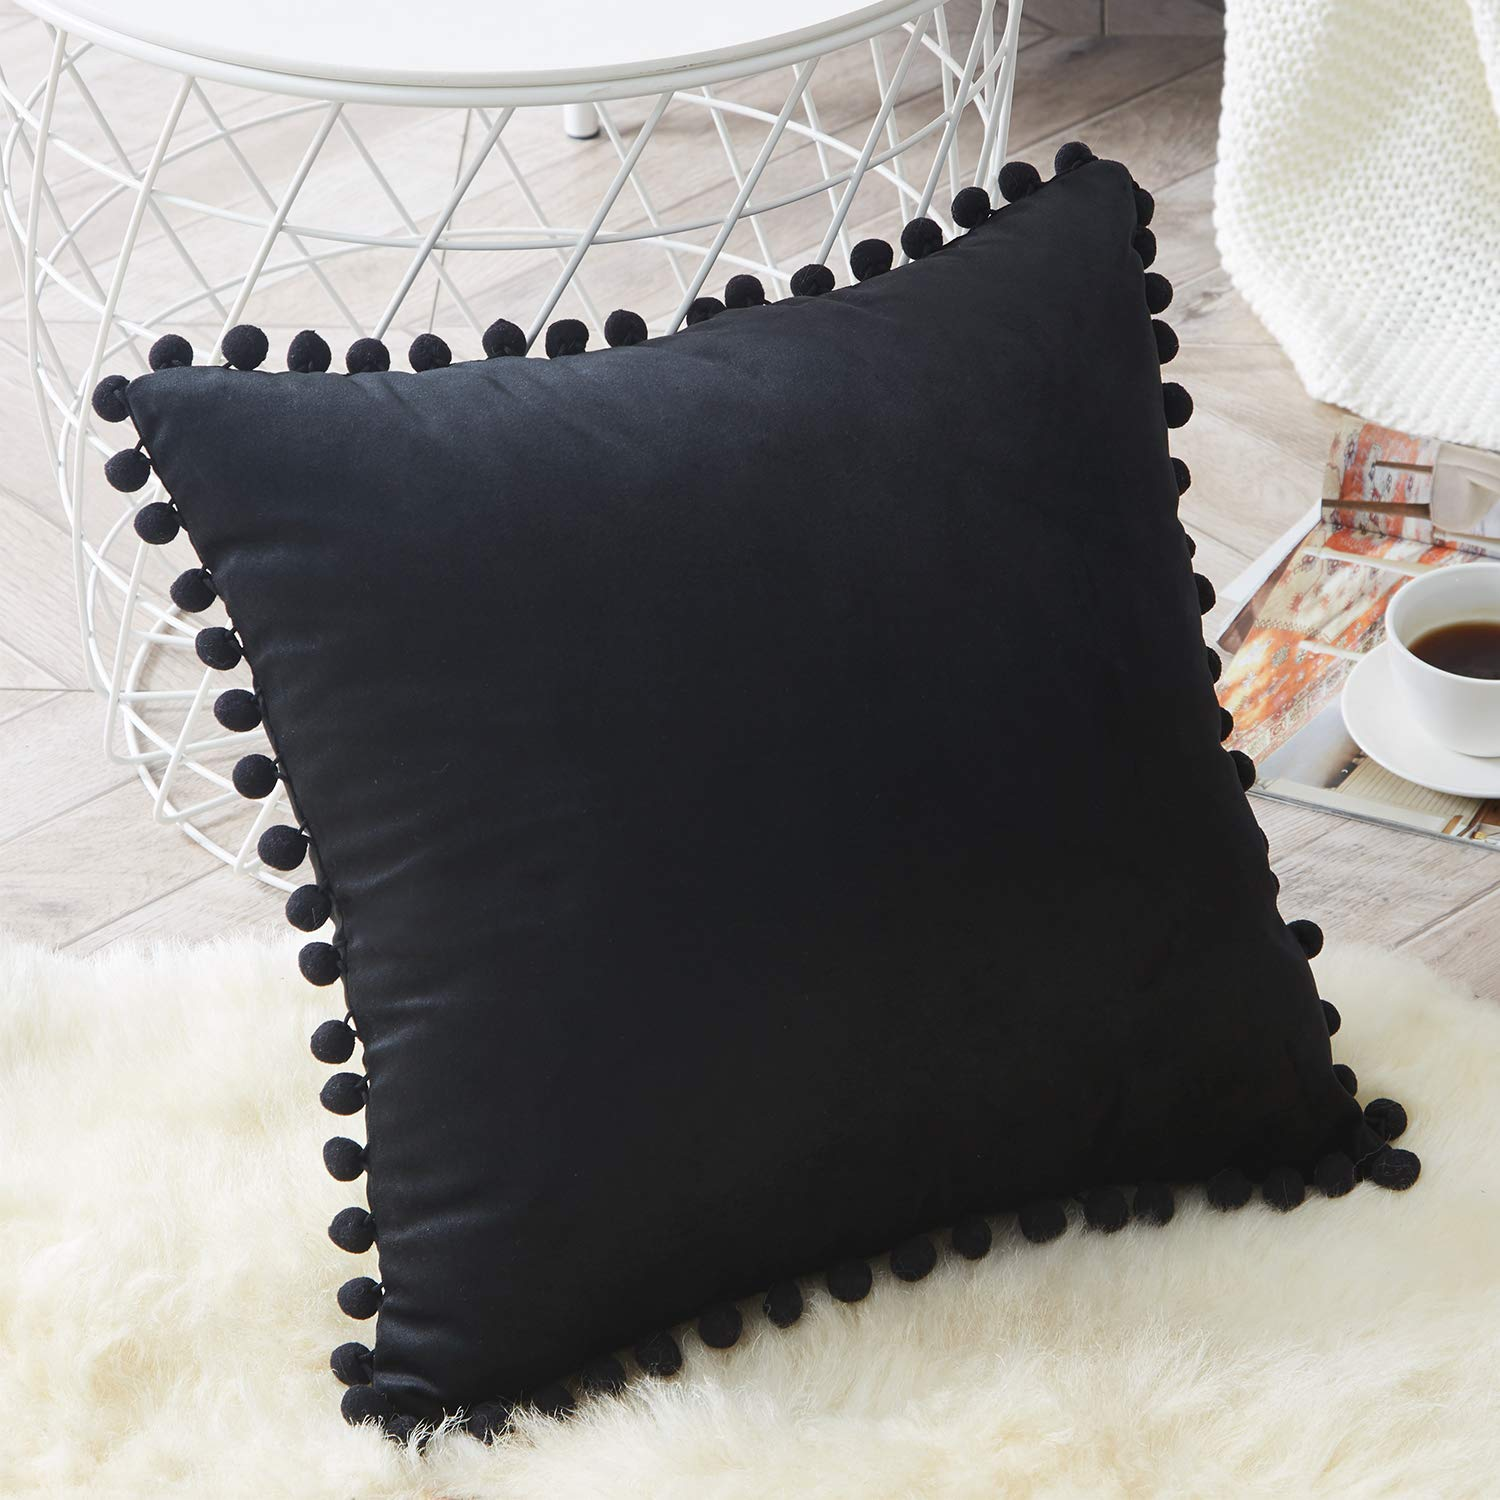 Top Finel Decorative Throw Pillow Covers for Couch Bed Soft Particles Velvet Solid Cushion Covers with Pom-poms, Pack of 1, Black